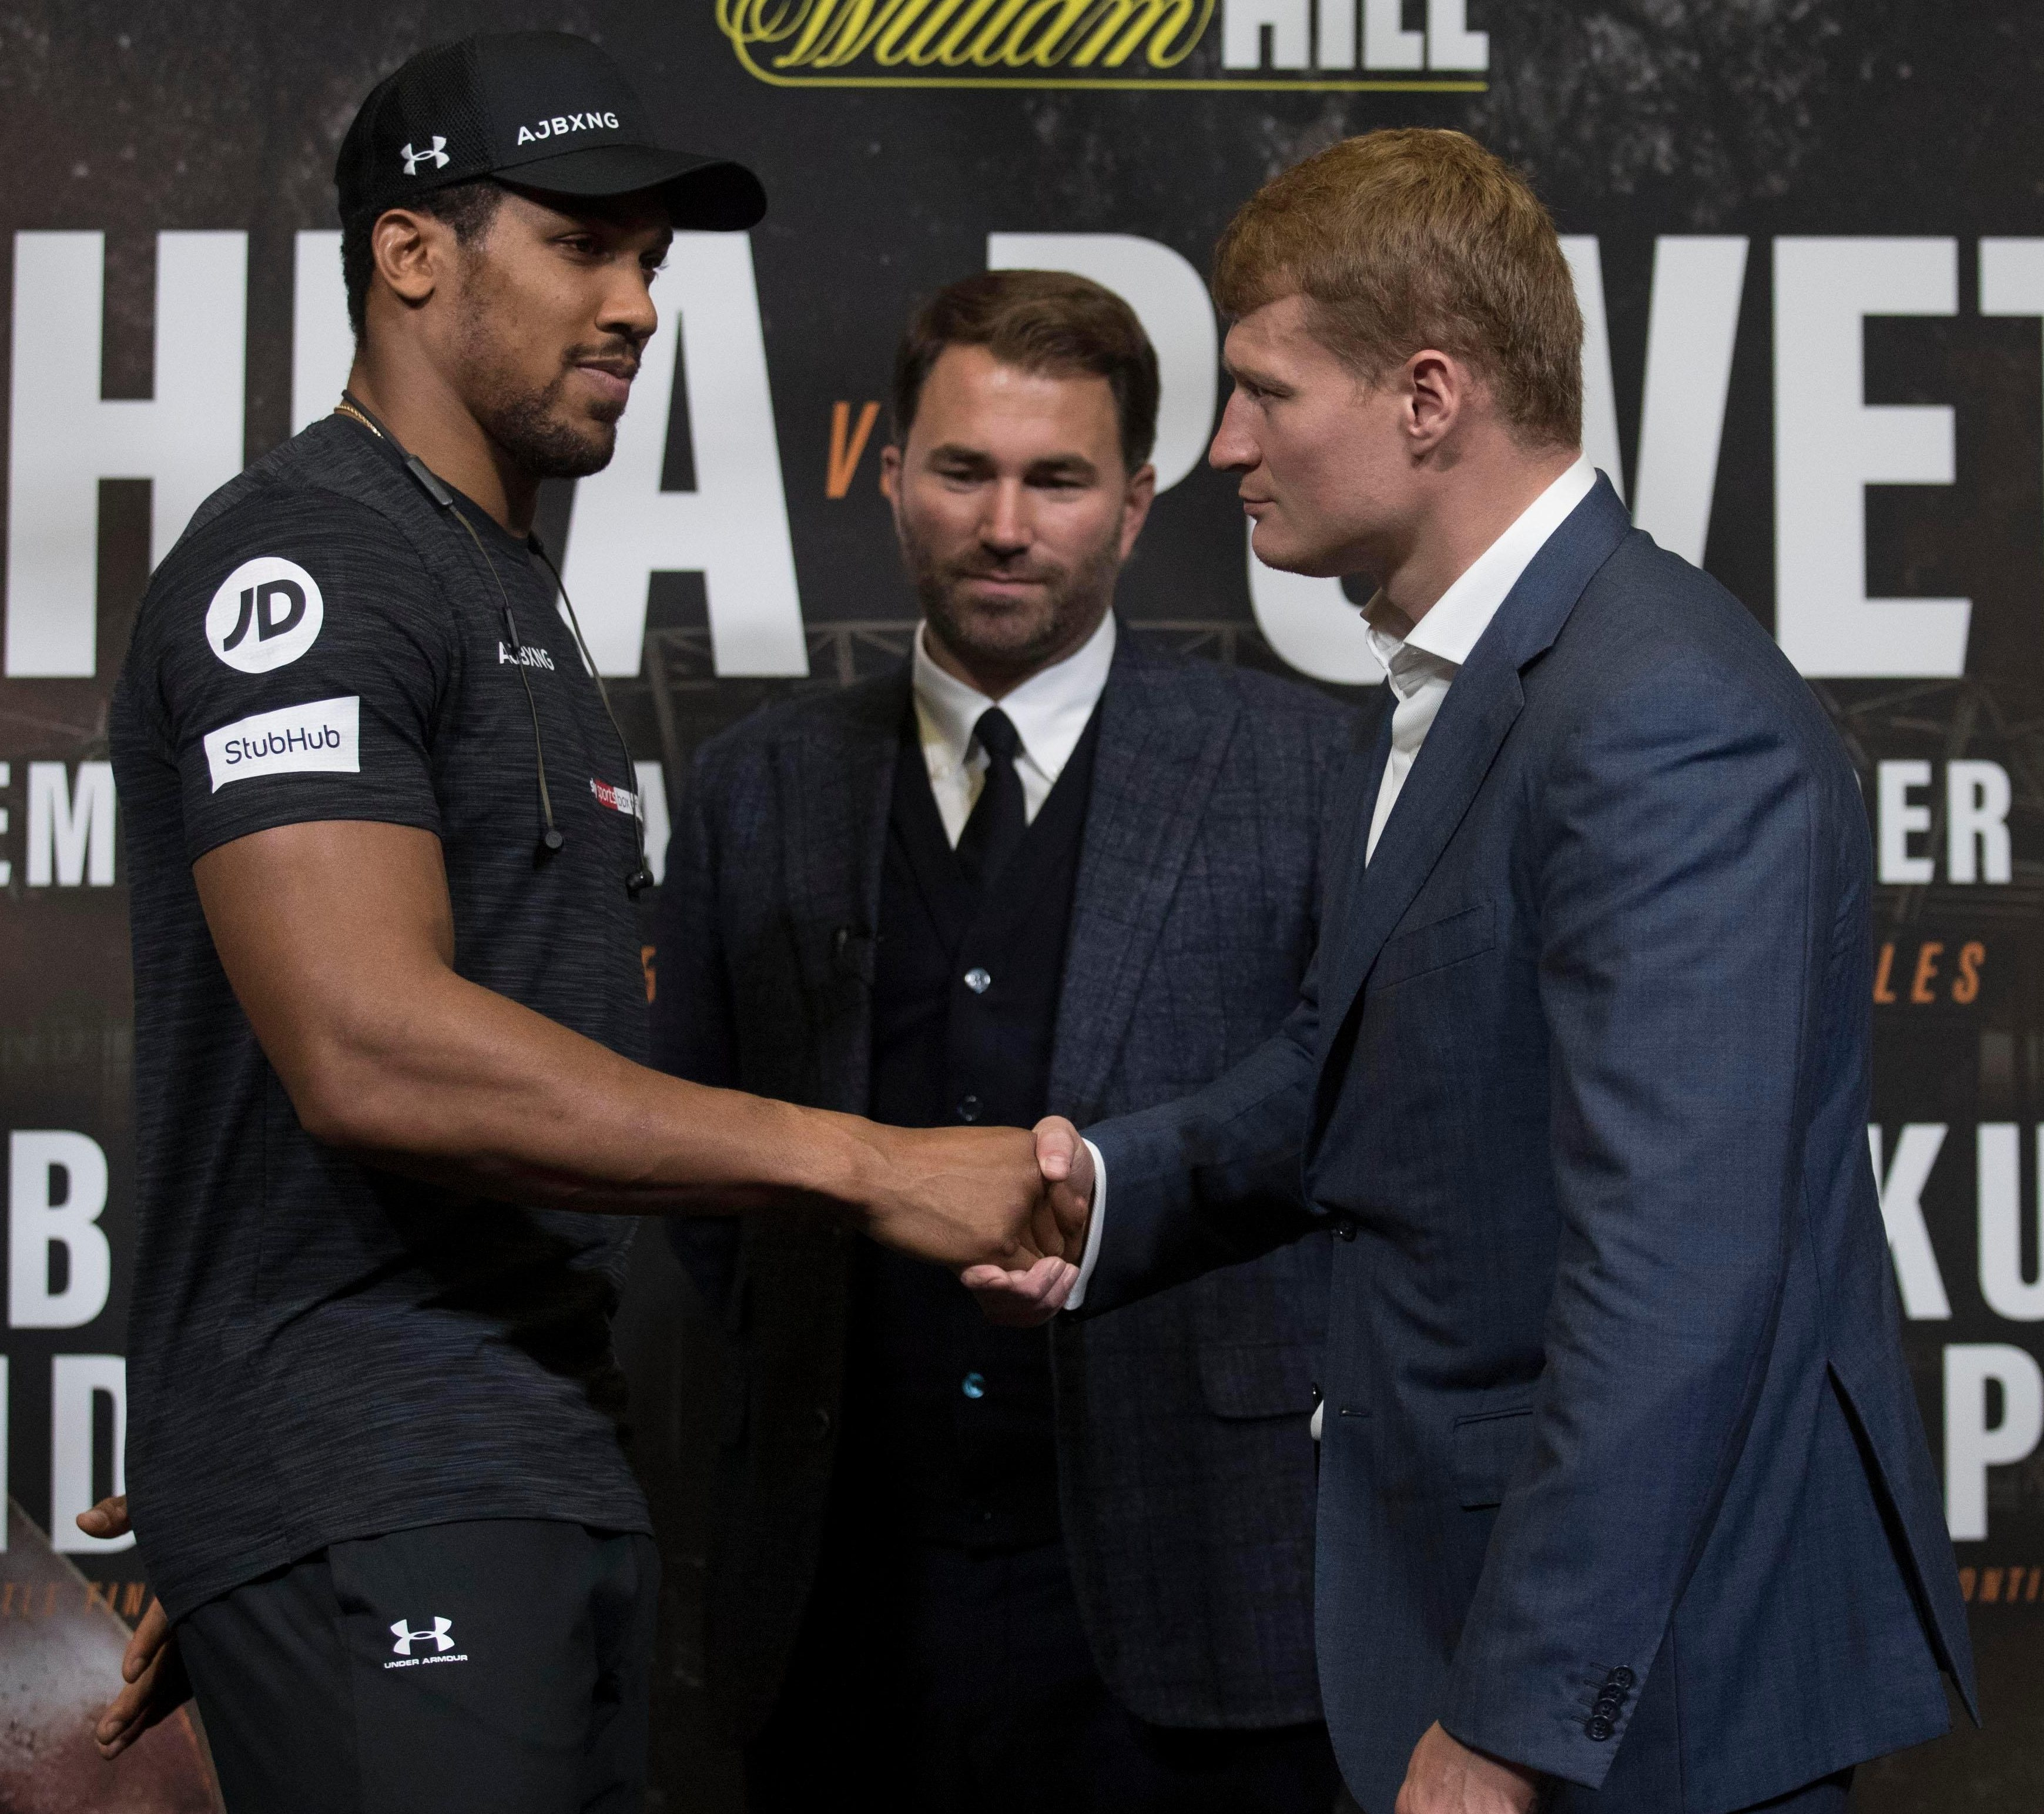 Many believe Anthony Joshua is in for his toughest task yet when he fights Alexander Povetkin